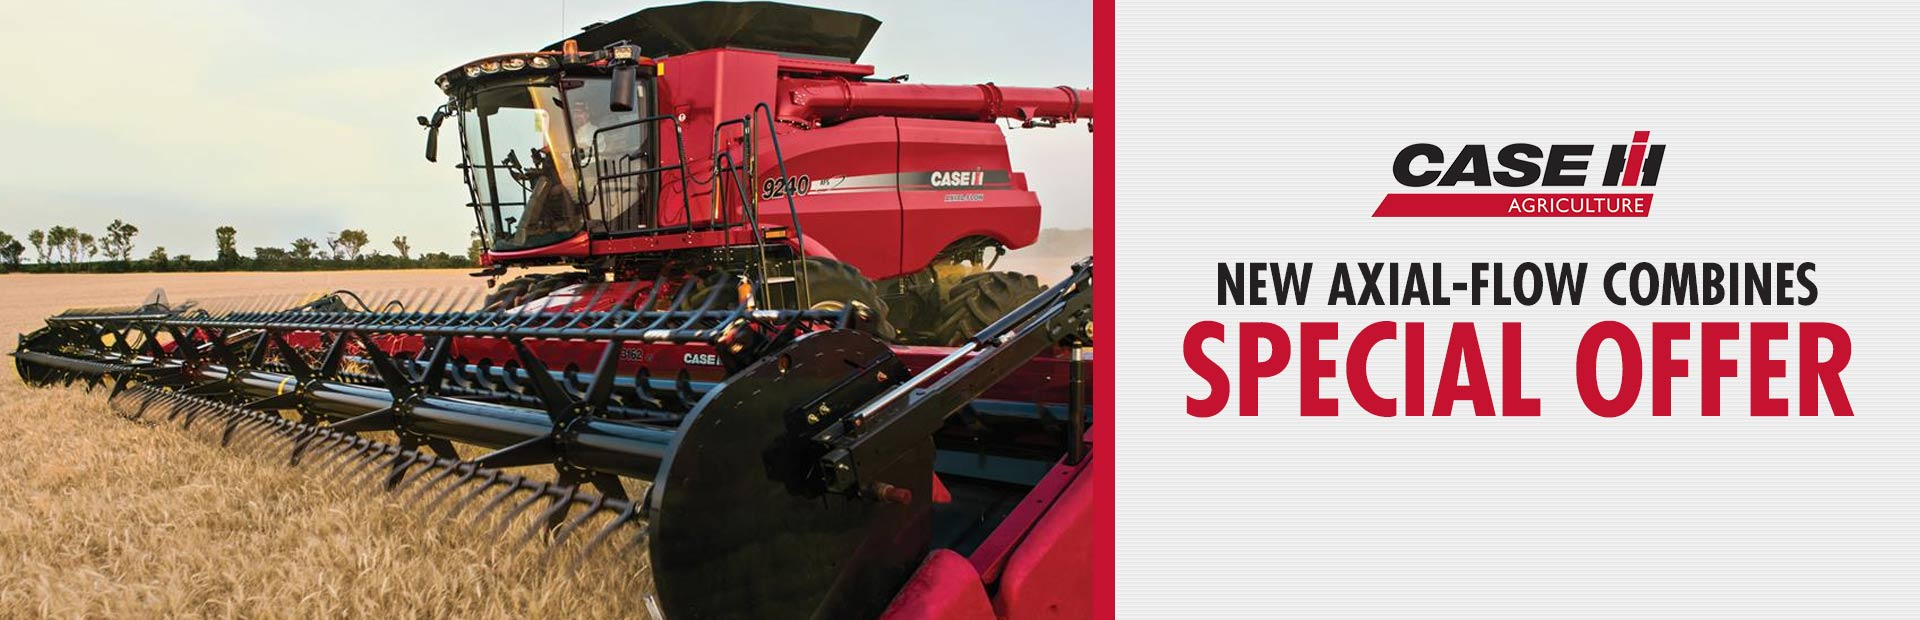 Case IH: New Axial-Flow Combines Special Offer